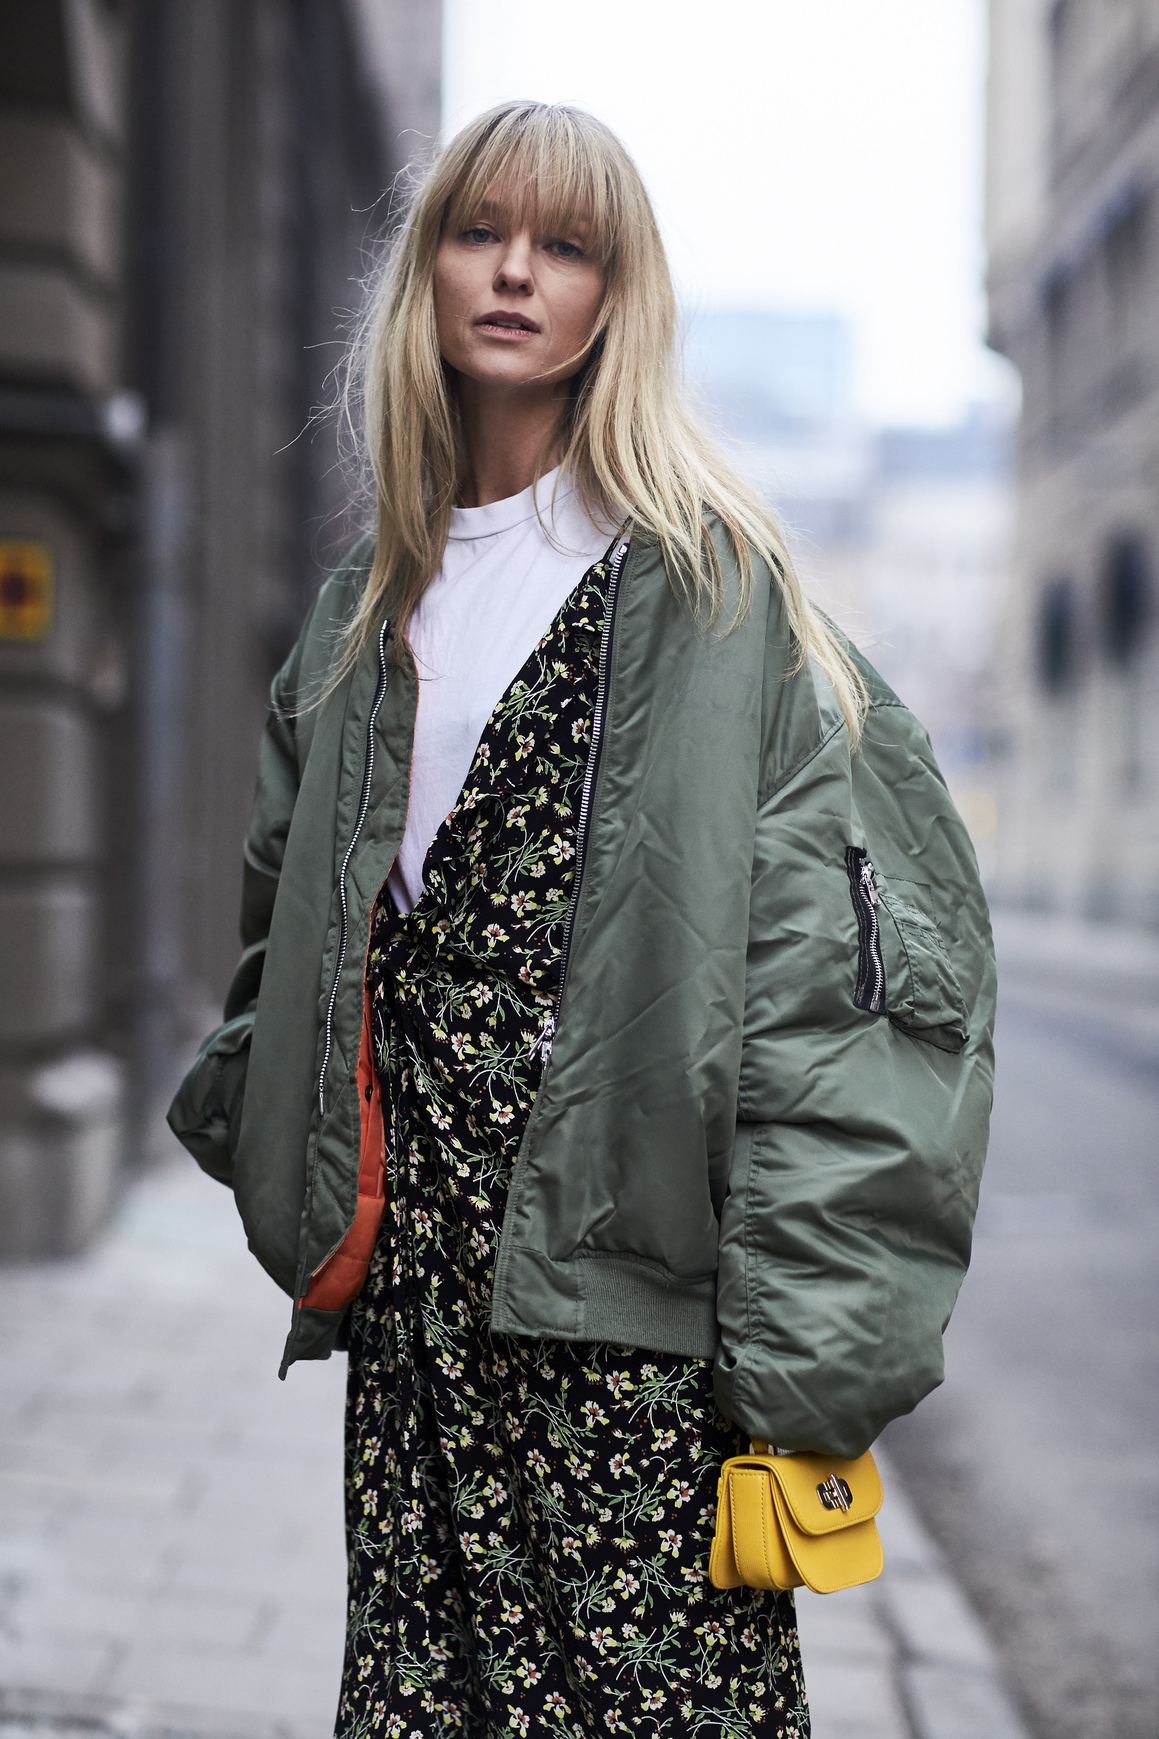 Sorry Ikea, but when we think Sweden, we think style. After all, the country basically invented the fashion blogger, and street style stars like Elin Kling have made the Scandinavian approach to fashion famous by taking their distinctive brand of easy minimalism global.